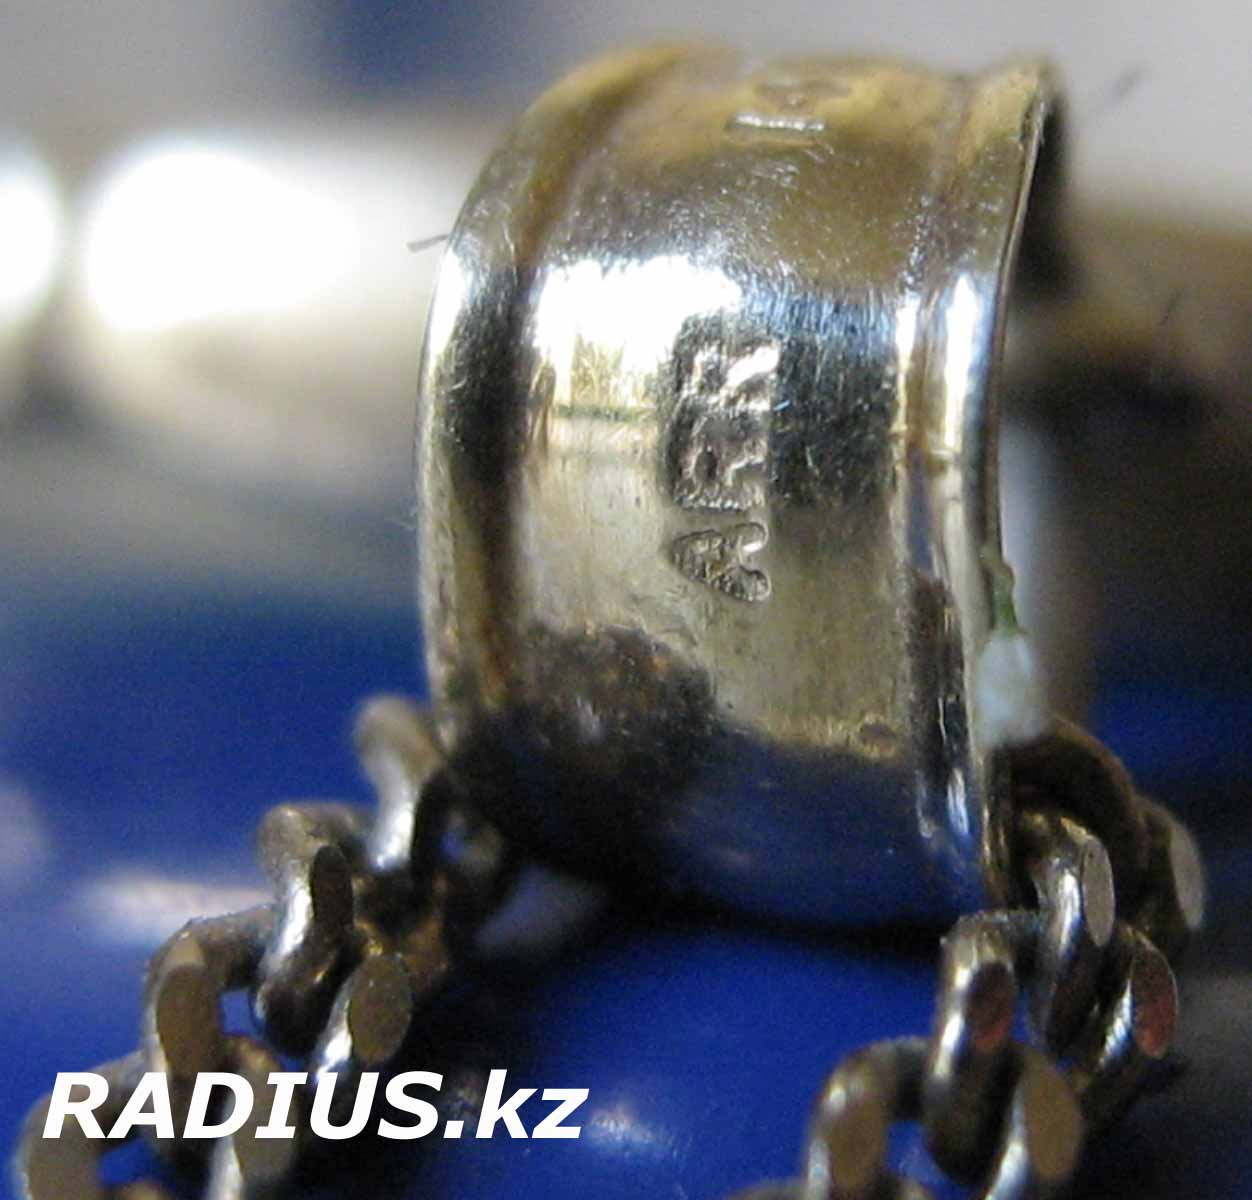 radius.kz/forum/attachments/tryhrtyh_8388.jpg